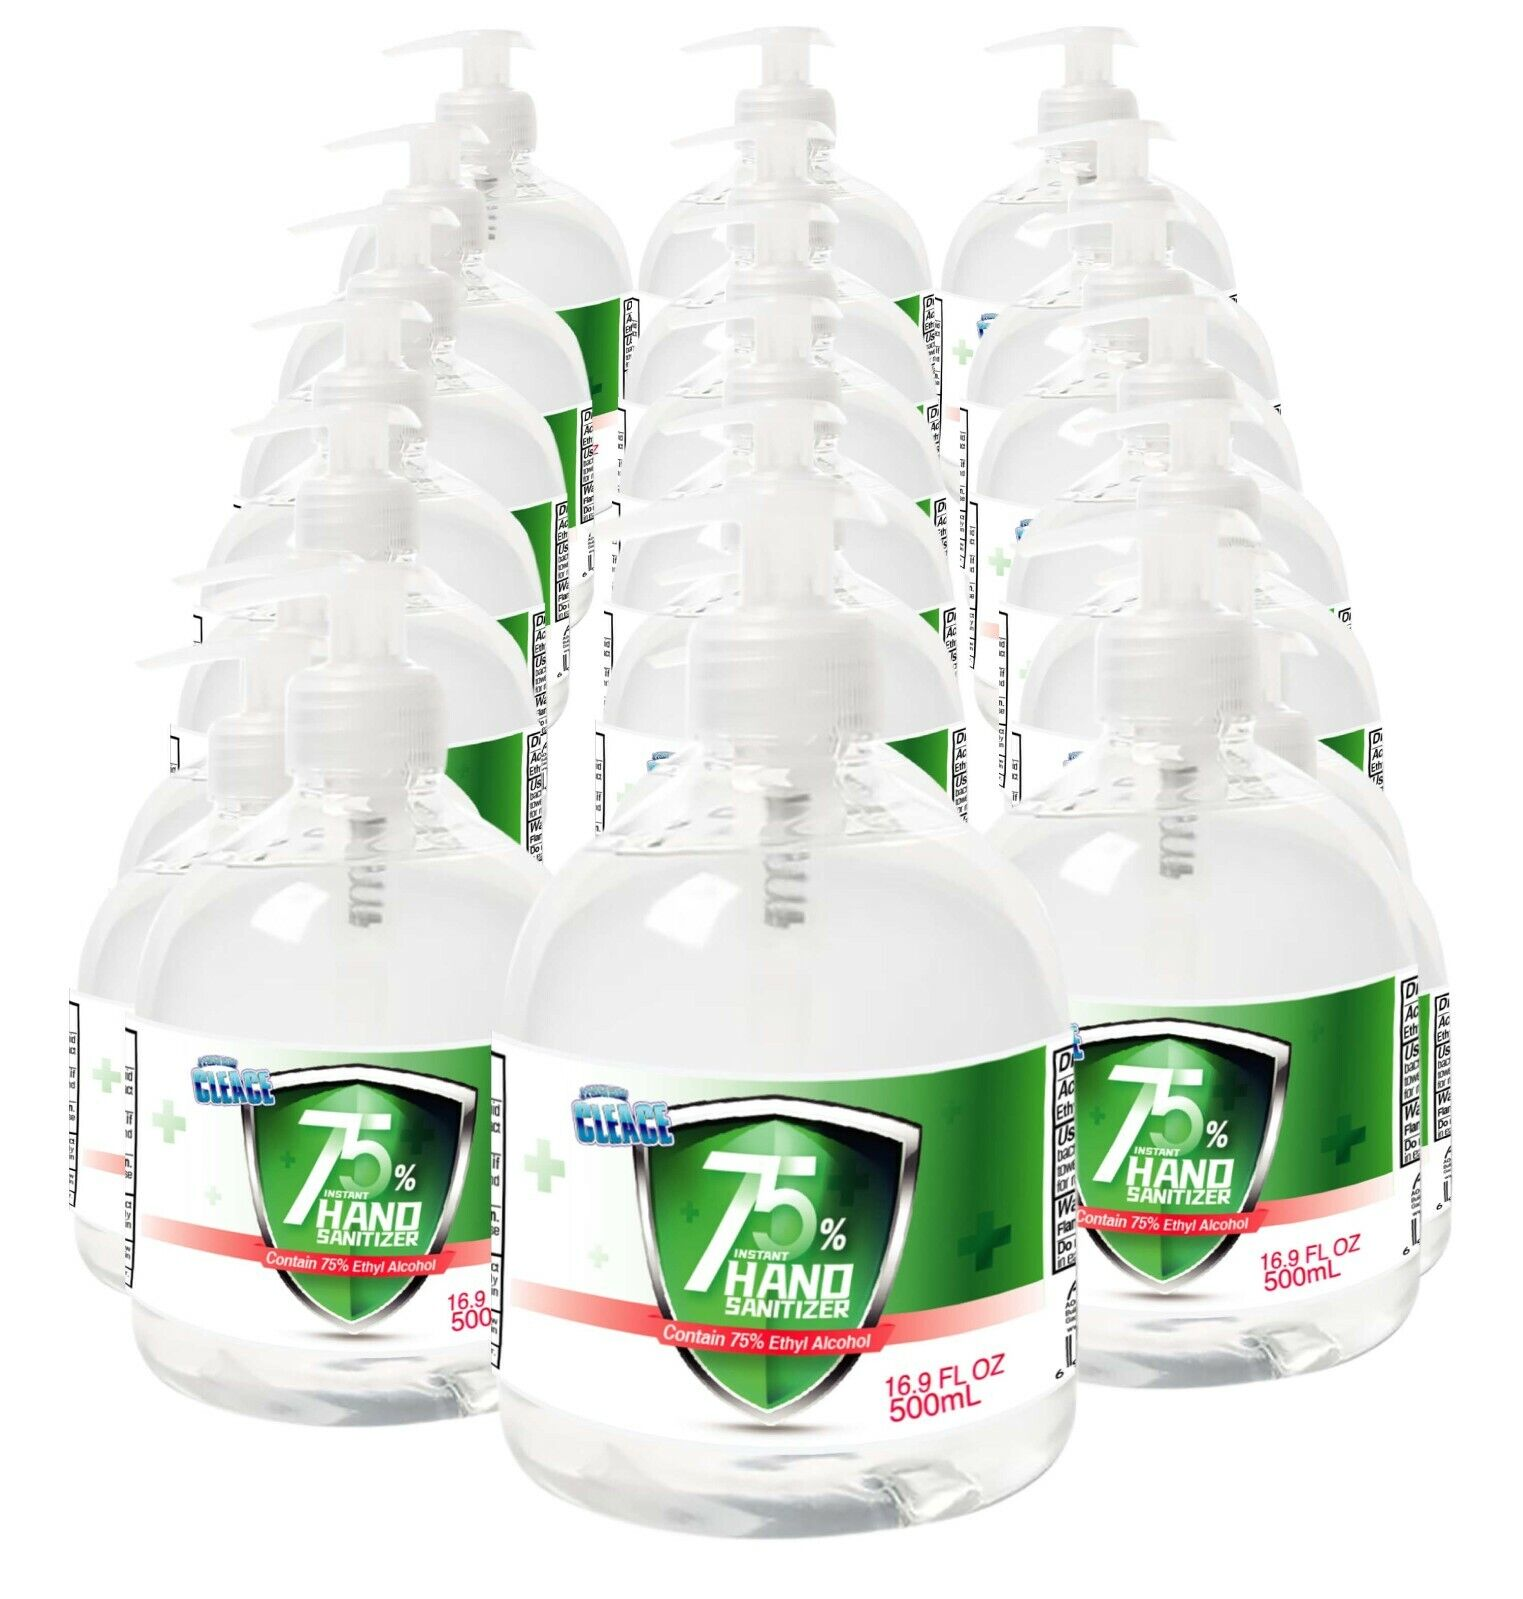 [24-PACK] Cleace Advanced 75% Alcohol Hand Sanitizer Gel, Large 16.9 Fl. Oz x 24 Hand Sanitizers